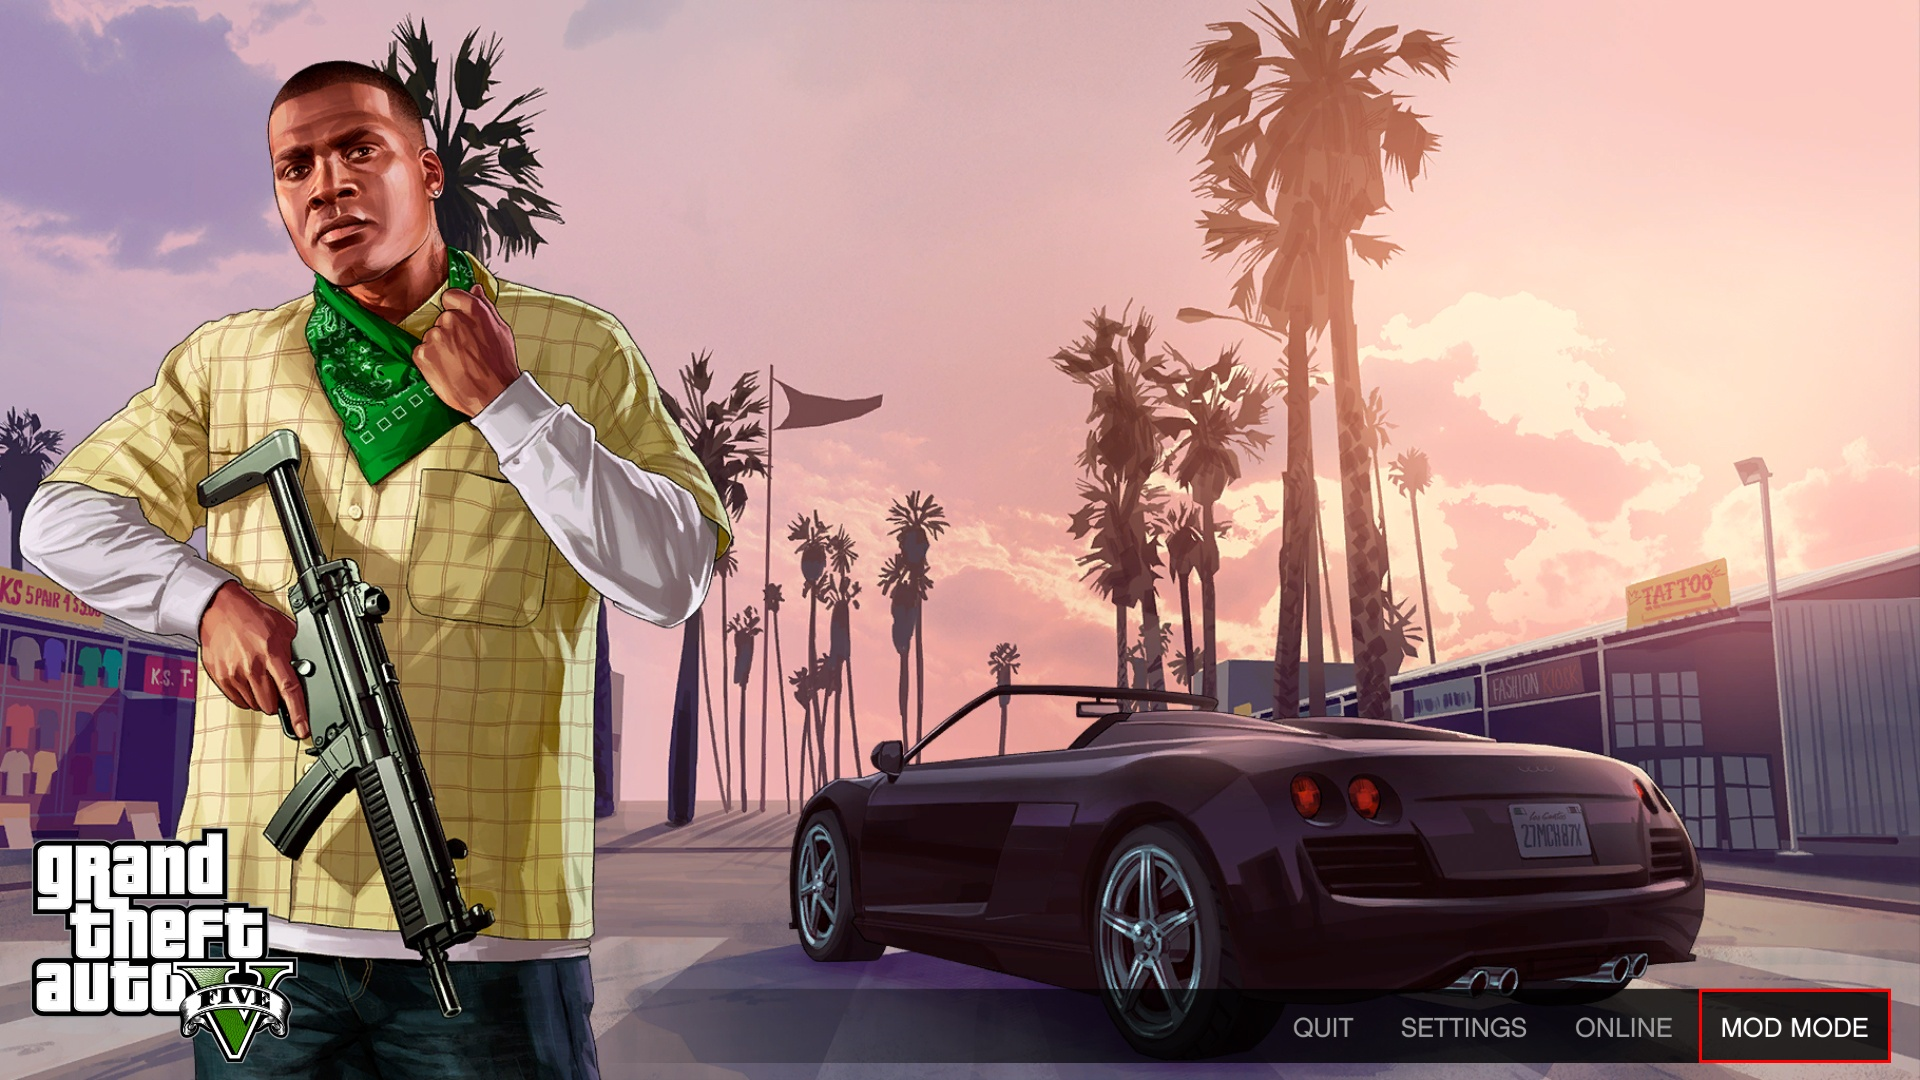 GTA 5 PLAYER Mods | Blogs Health Tips, Entertainment, Fashion